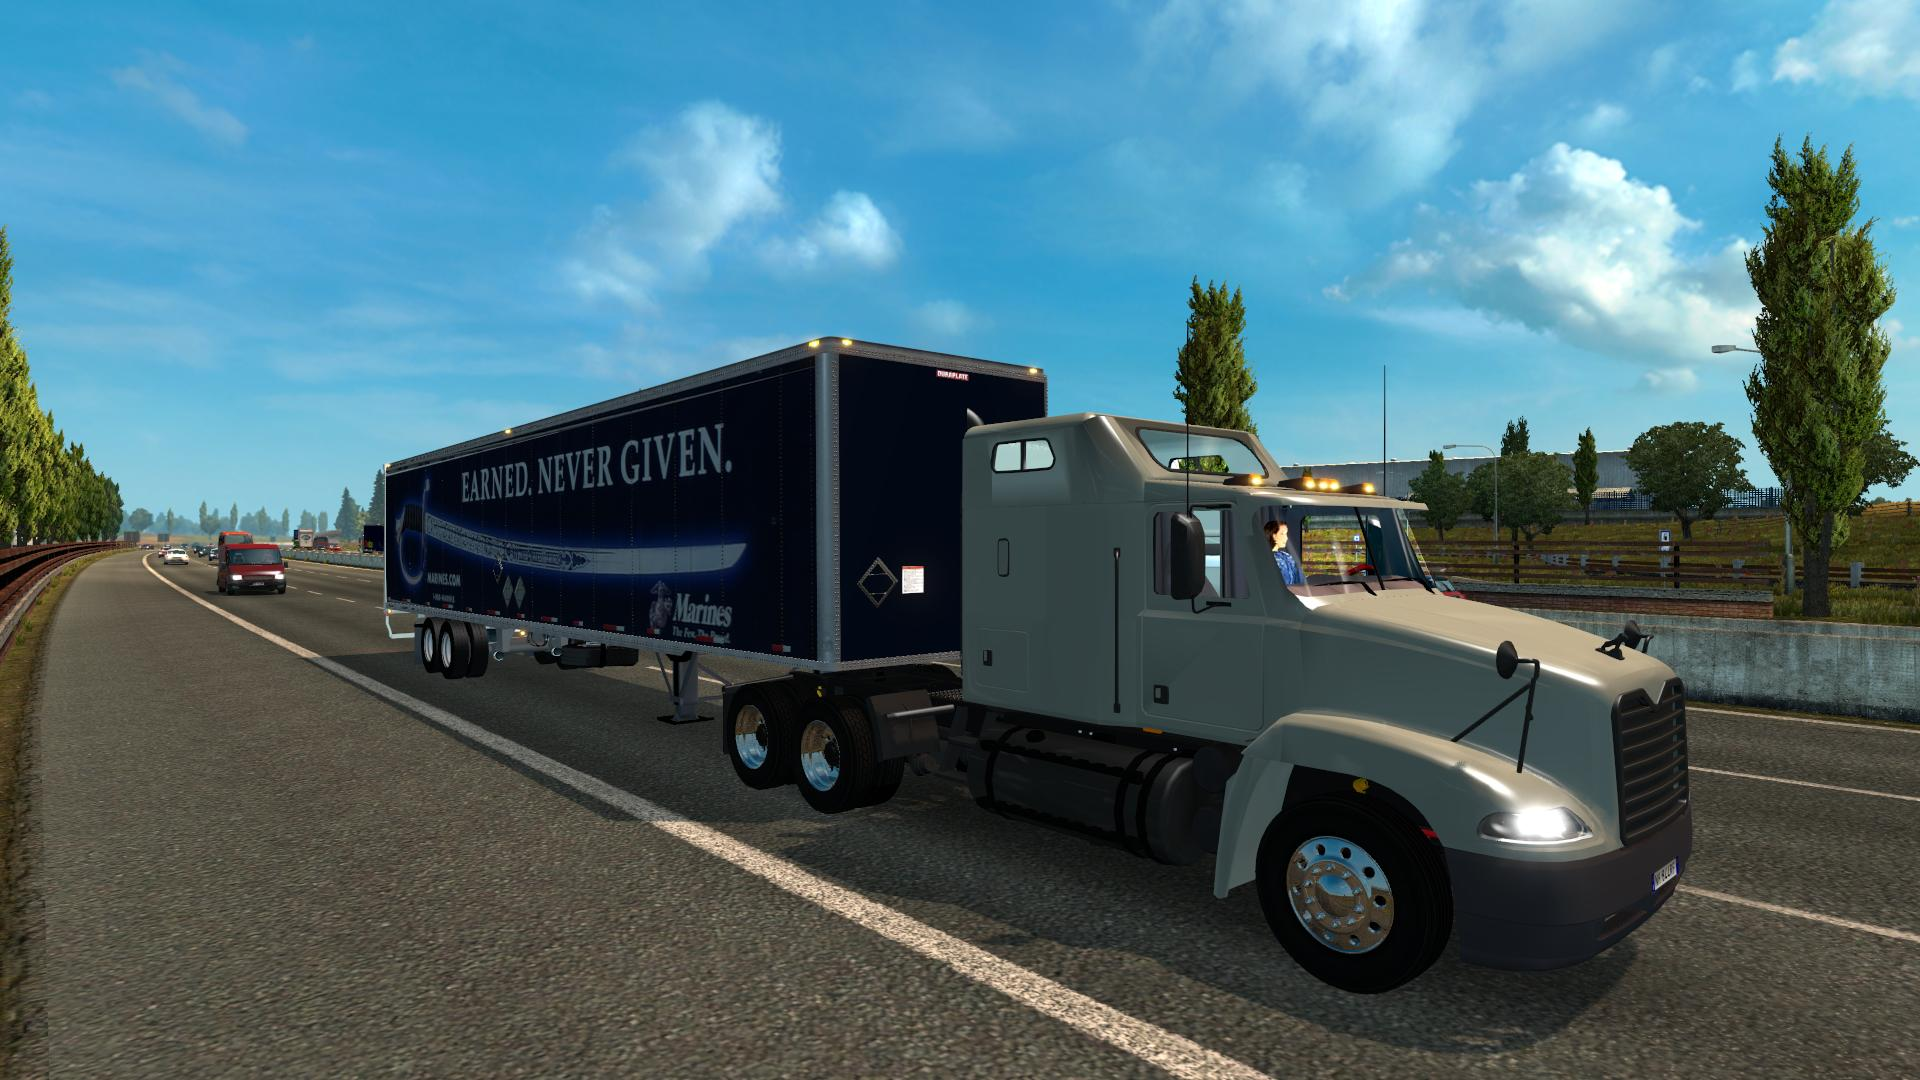 Home Euro Truck Simulator 2 Mods Tools Money Cheat ETS2. Money Cheat ETS2. Share. Facebook. Twitter. Pinterest. In this post, I will show you how to cheat money in Euro Truck Simulator 2 by the easiest way, It's using CheatEngine. Till now, this method ...